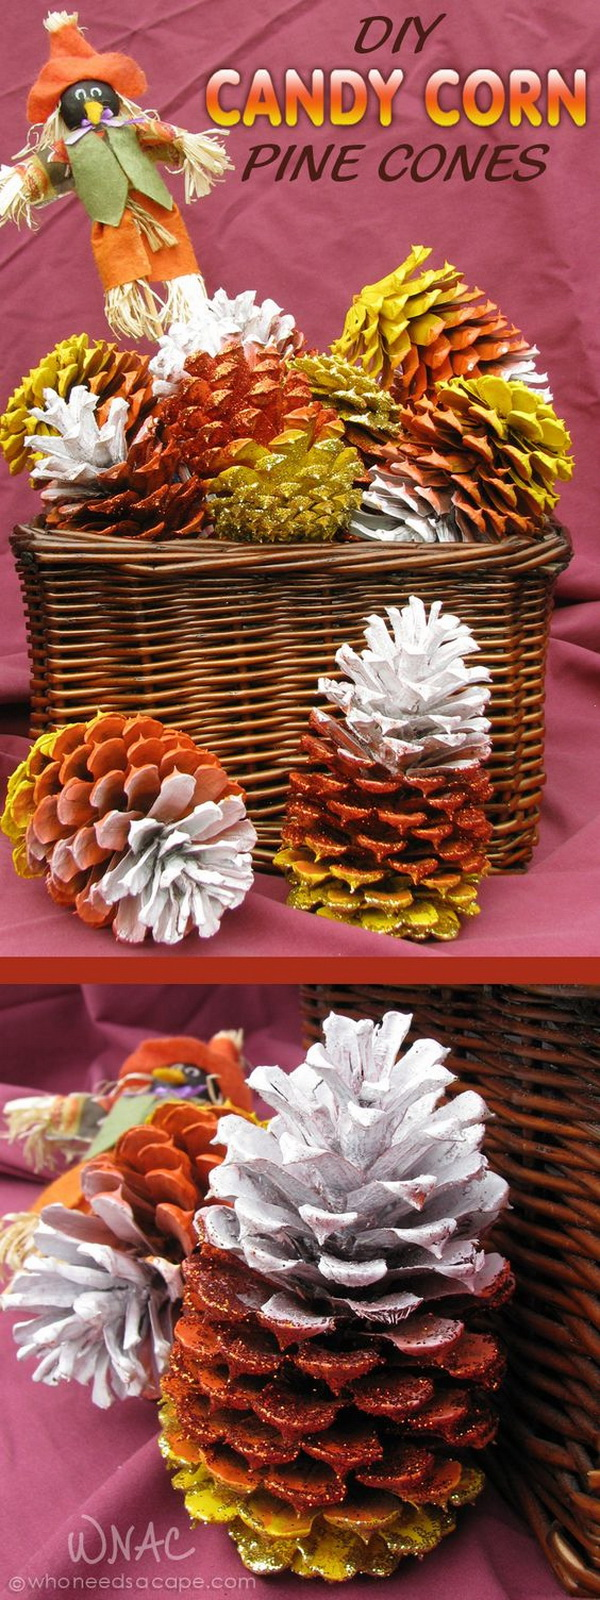 DIY Candy Corn Pine Cones. Transfer the pine cones your pine trees have dropped during the summer into these fun, fast and inexpensive crafts to dress up your porch or home for fall.